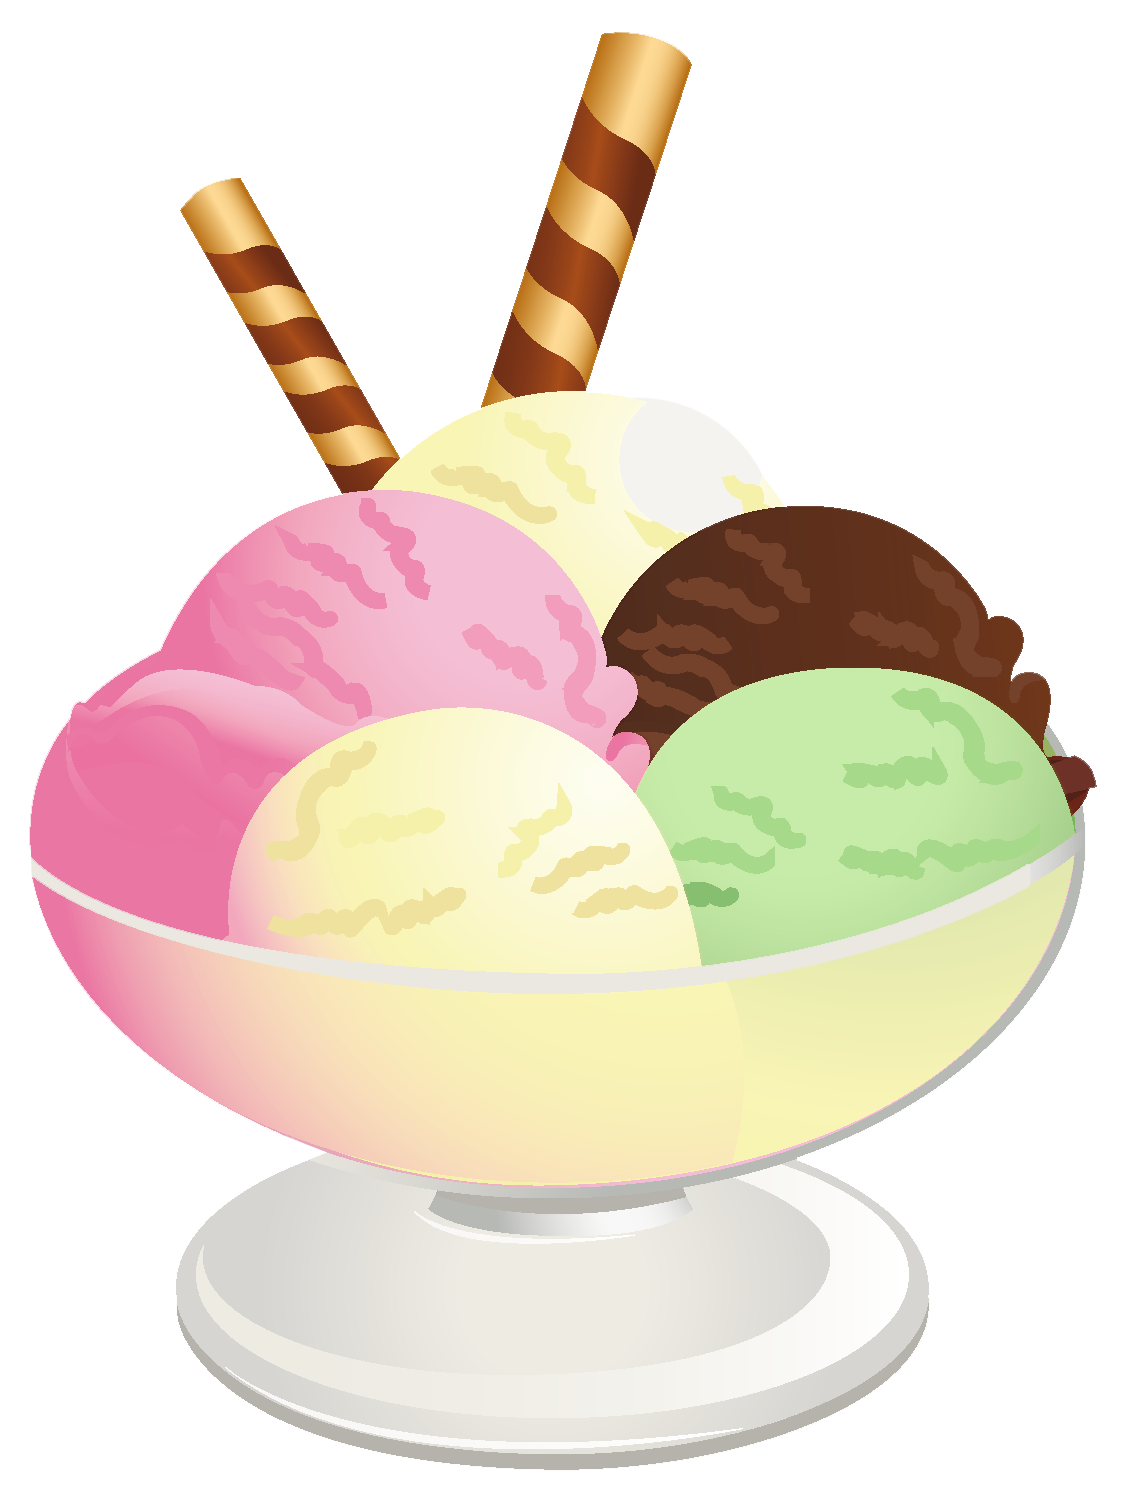 ice cream sundae png picture scrap digital pinterest clip art rh pinterest com ice cream clip art pictures ice cream clip art black and white